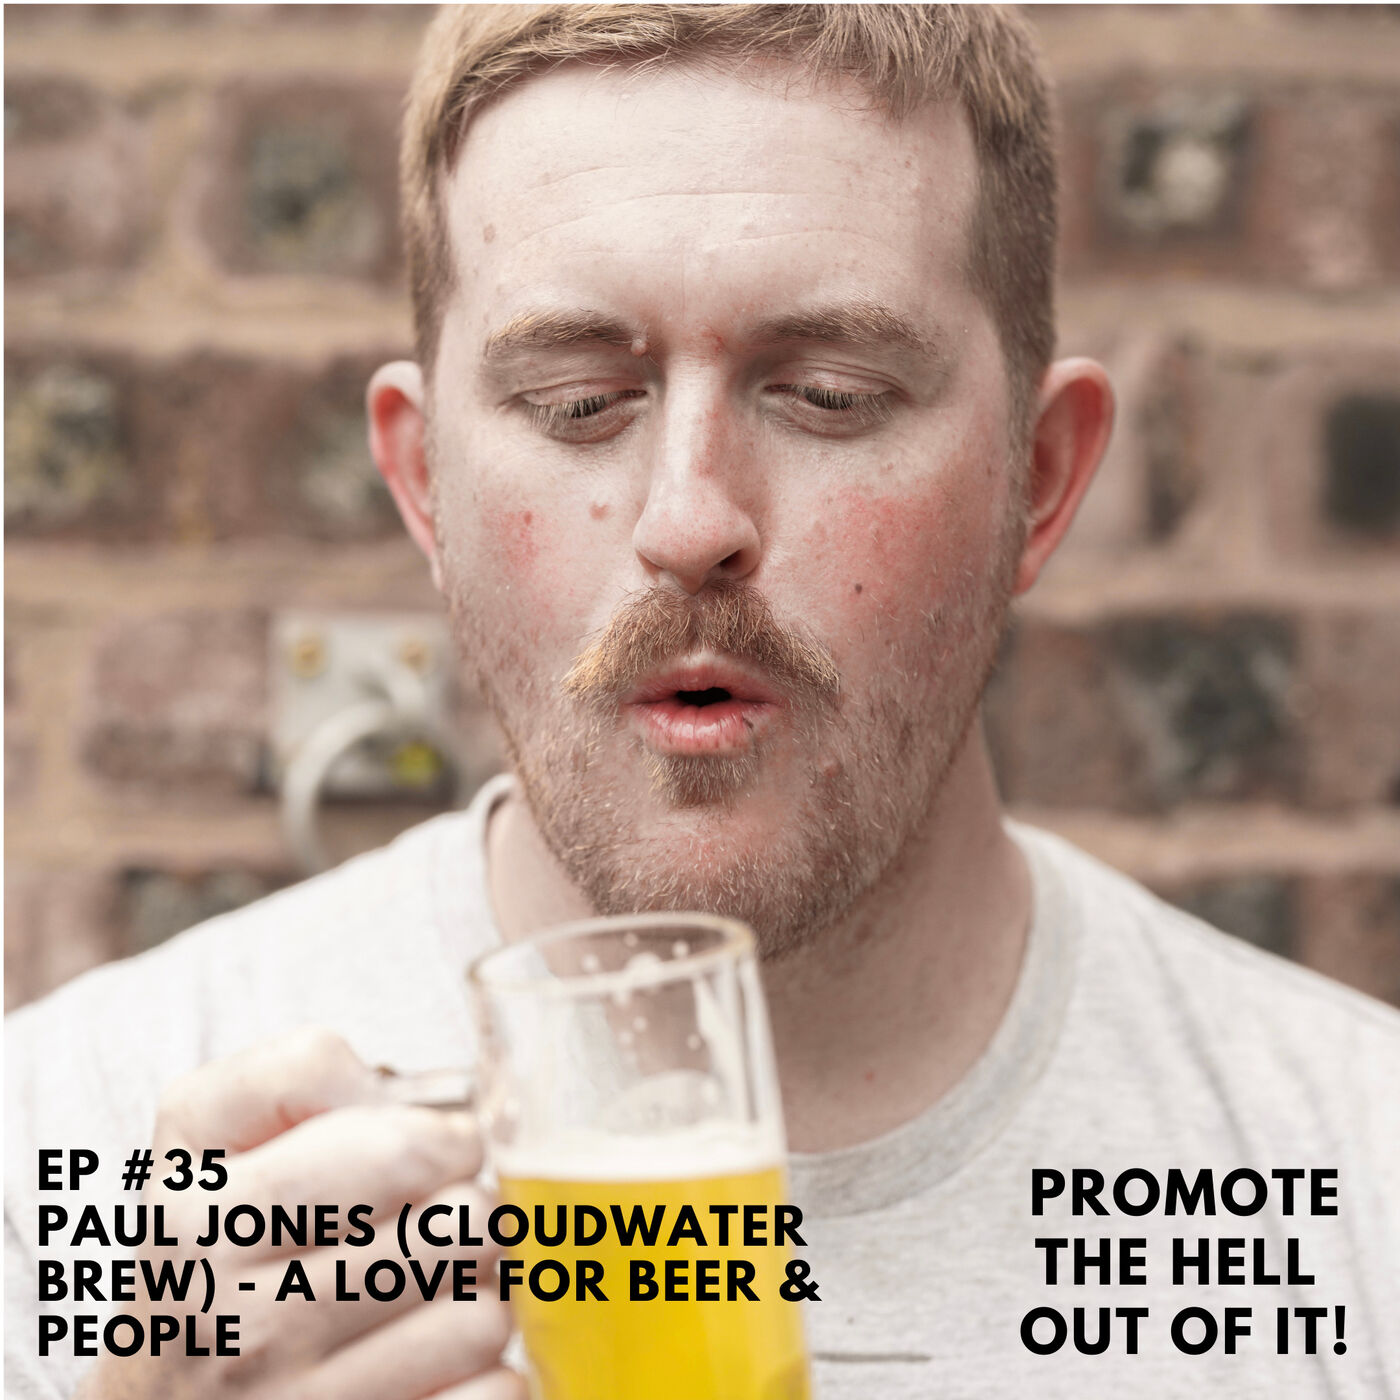 Paul Jones (Cloudwater Brew Co) : A Love For Beer & People!